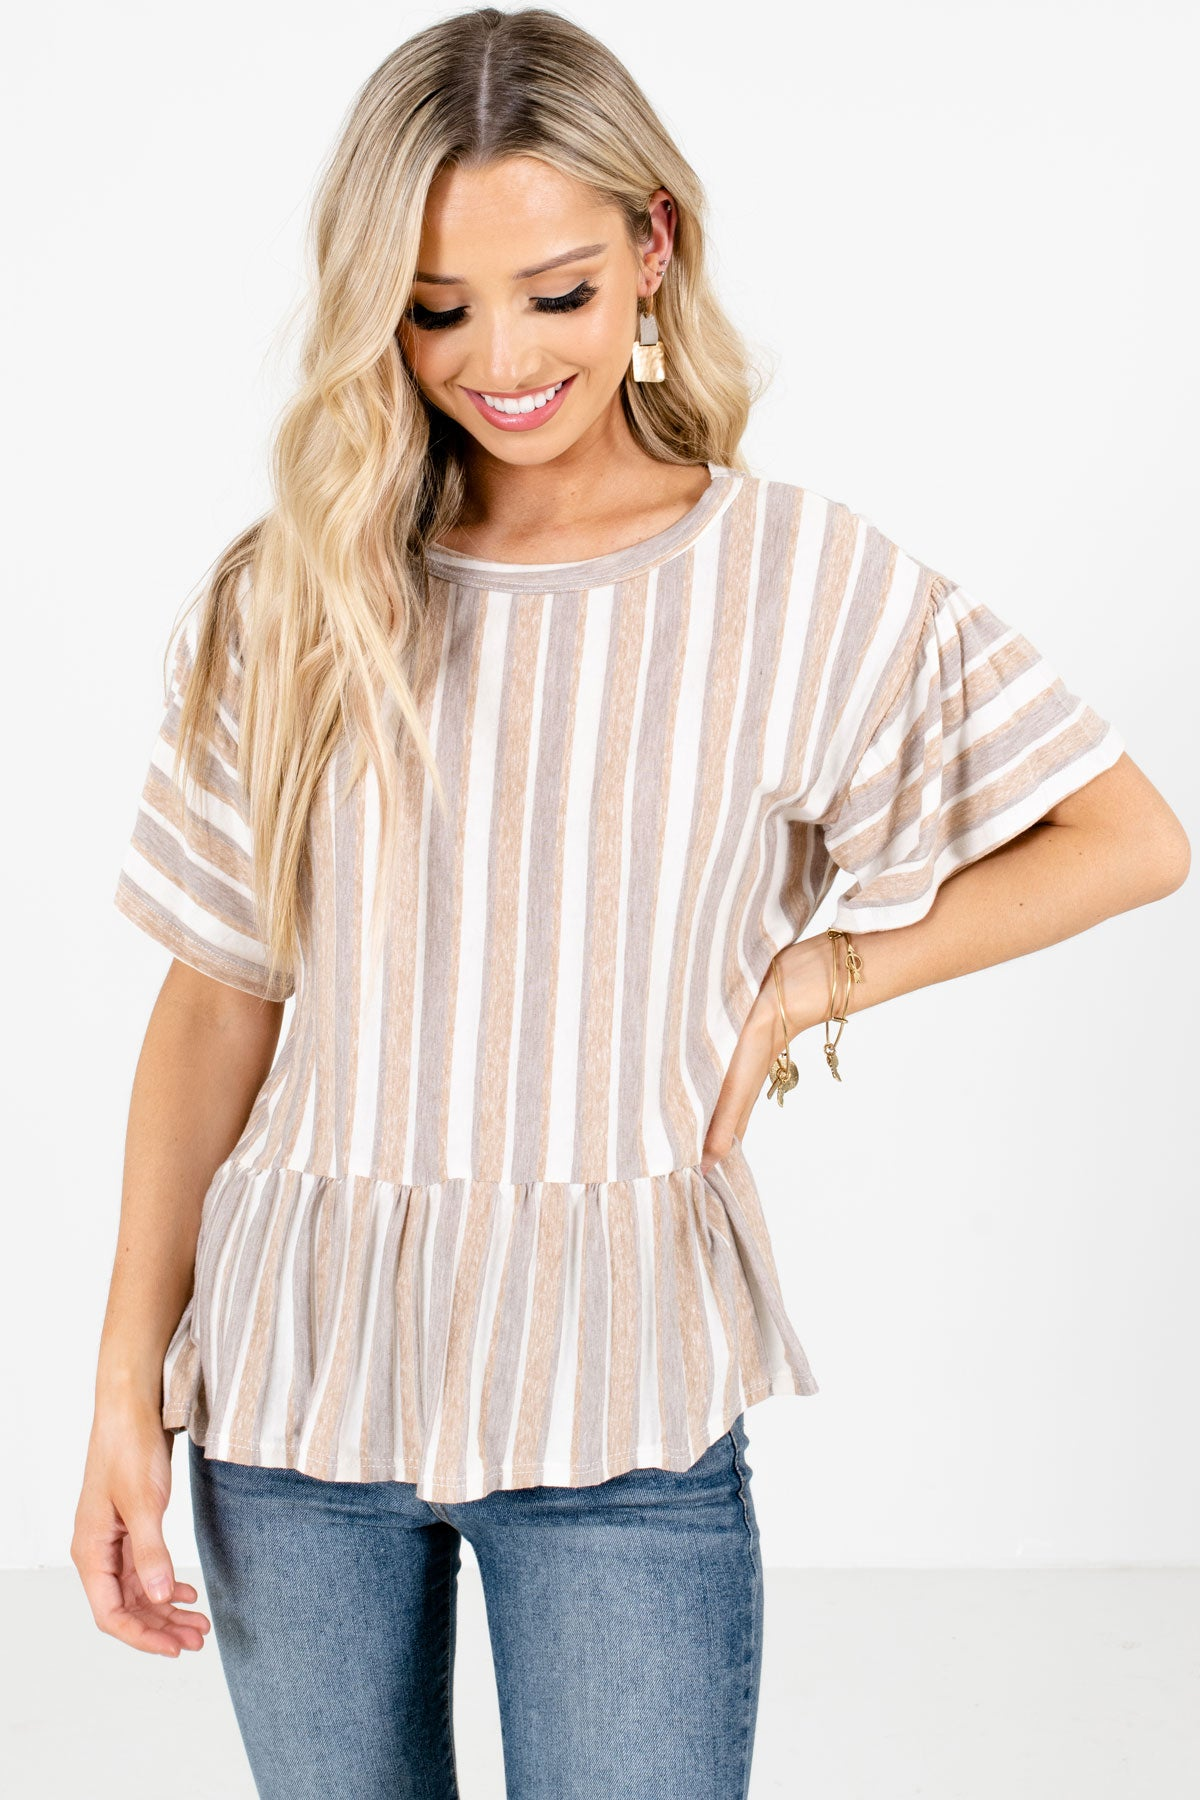 Brown Multi Striped Pattern Boutique Tops for Women